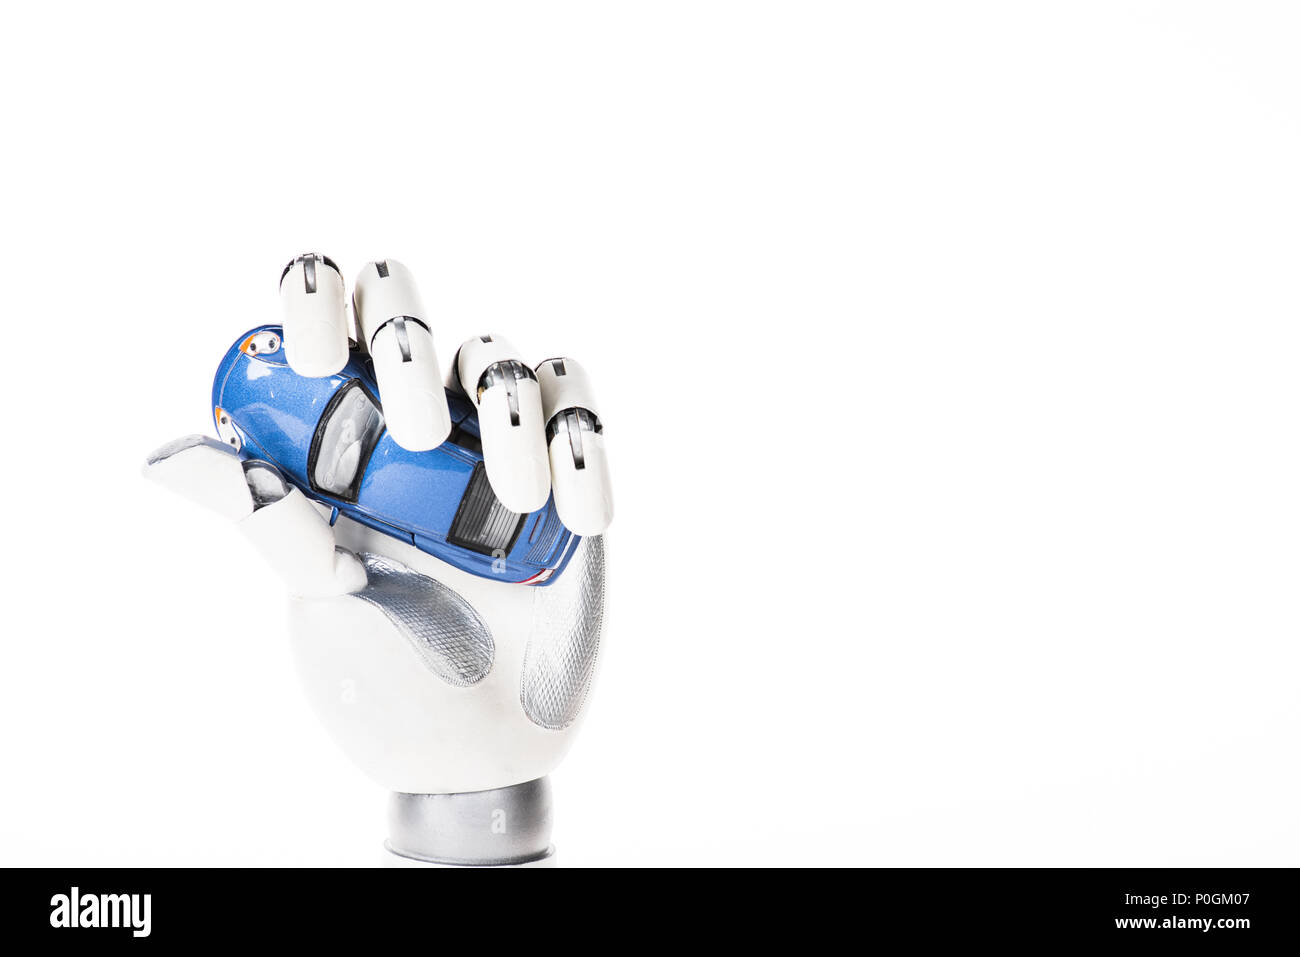 close-up view of robotic arm holding small blue car model isolated on white - Stock Image